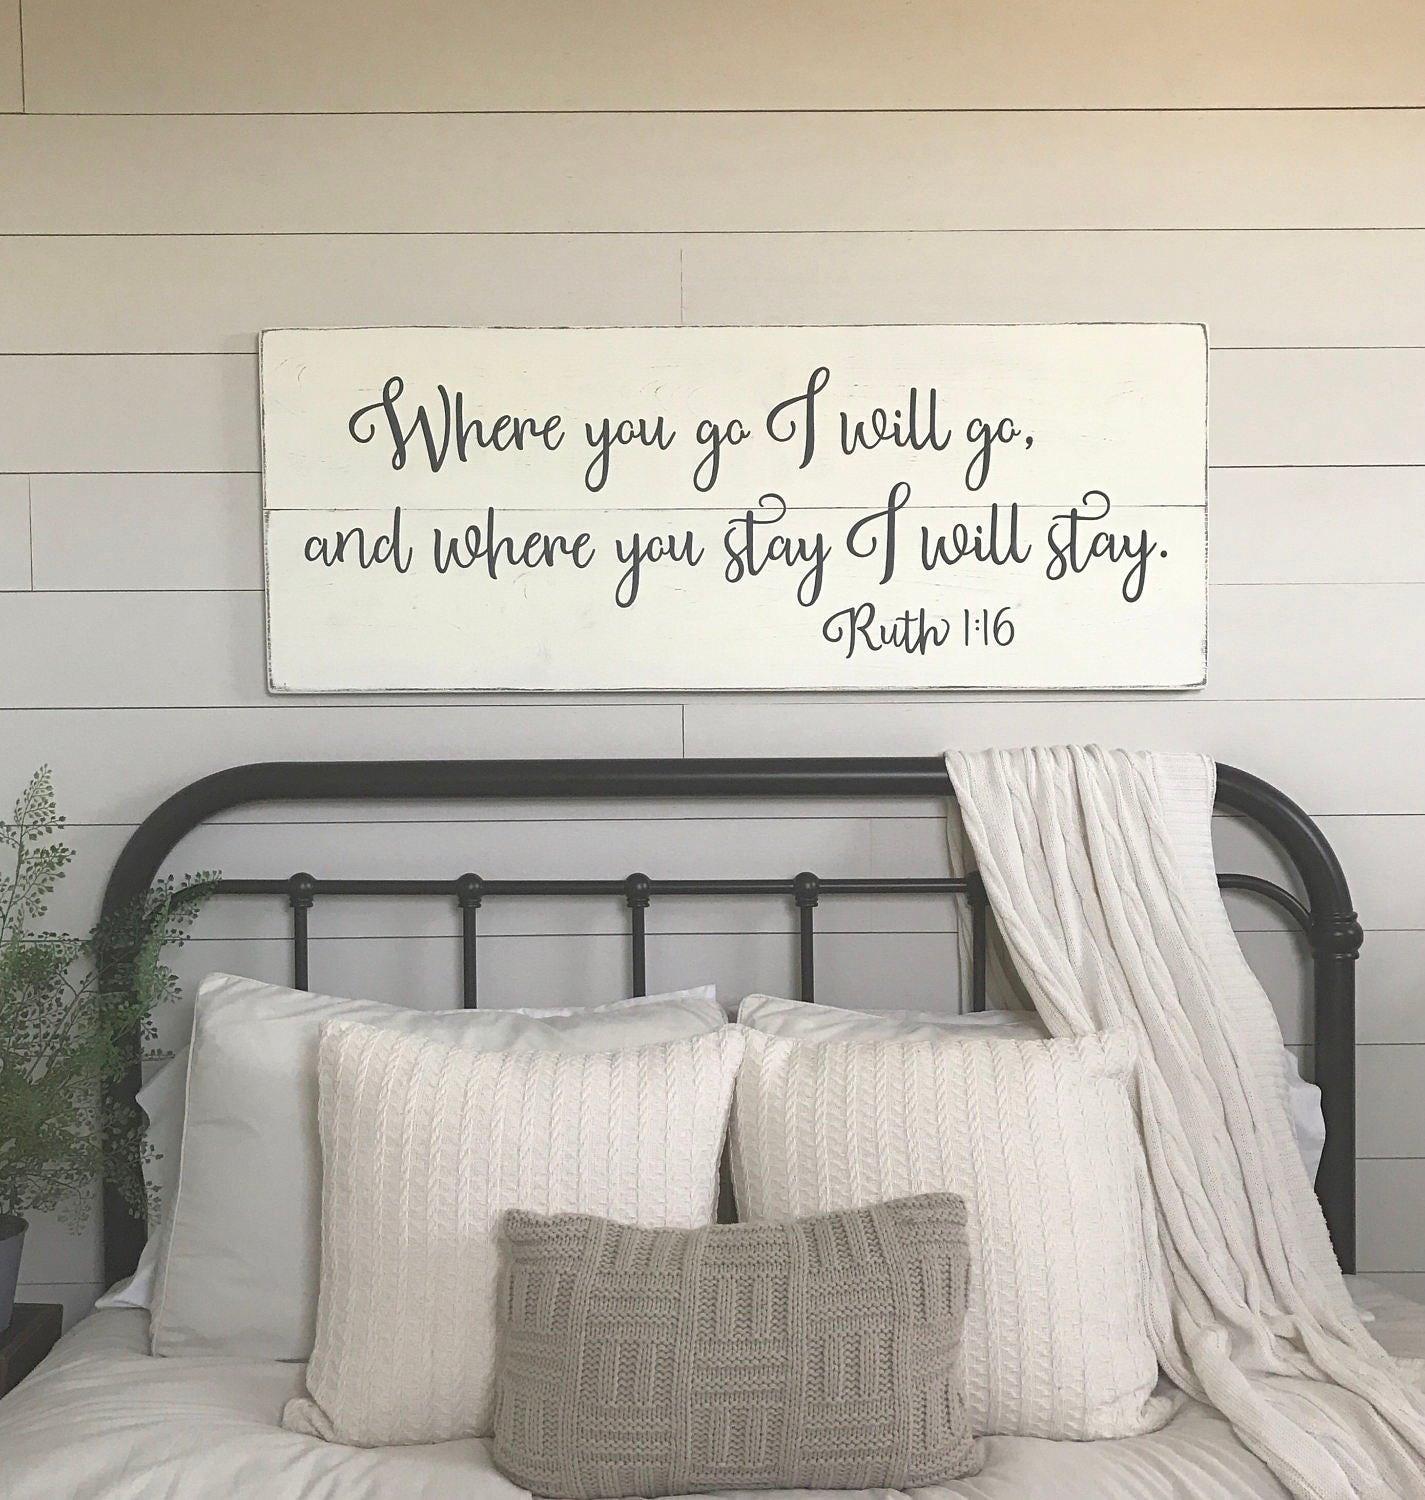 Bedroom wall decor   Where you go I will go   wood signs   bedroom sign. Master bedroom wall decor Love never fails 1 Corinthians